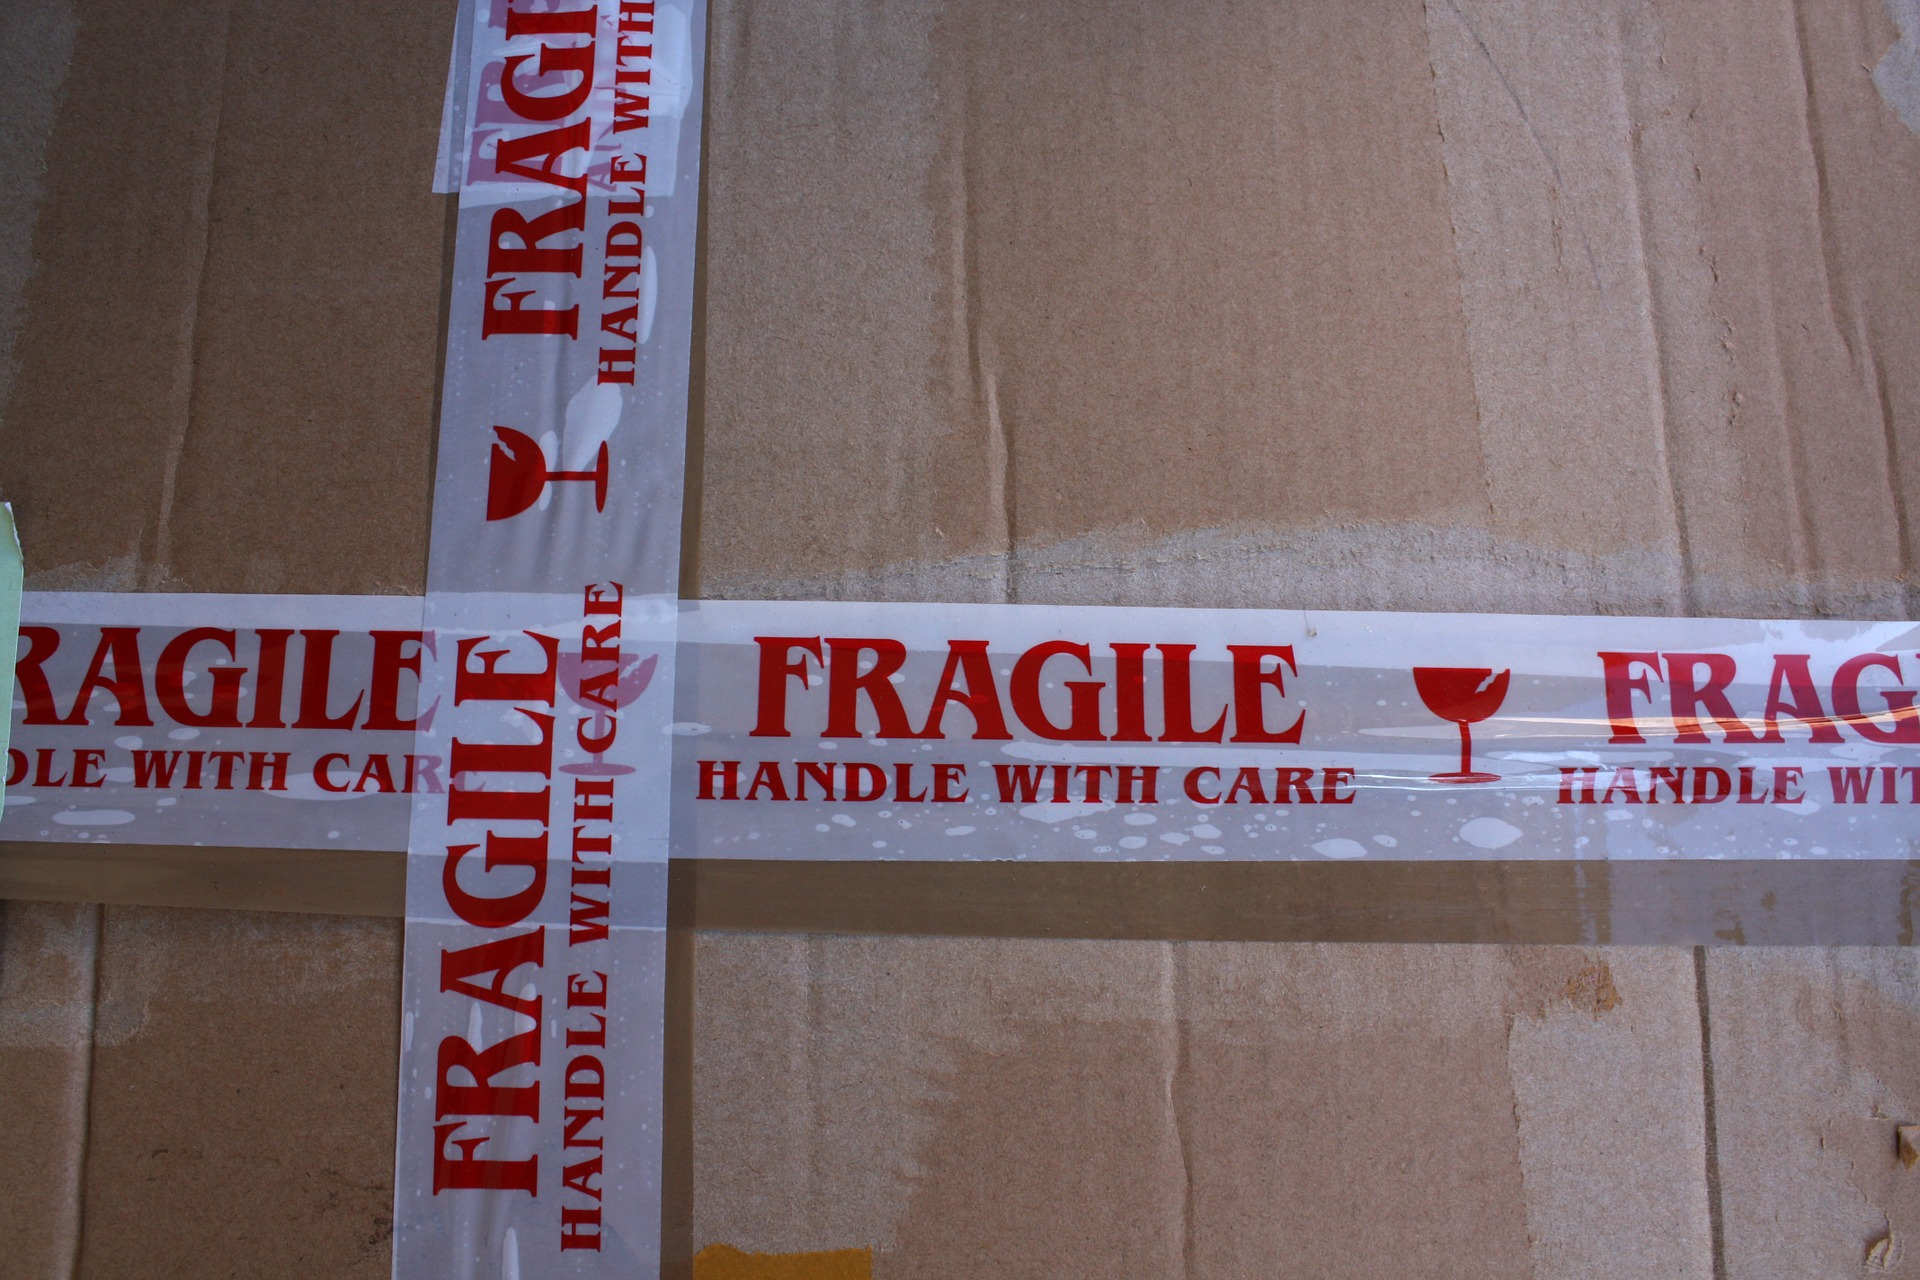 Retourenmanagement fragile Ware